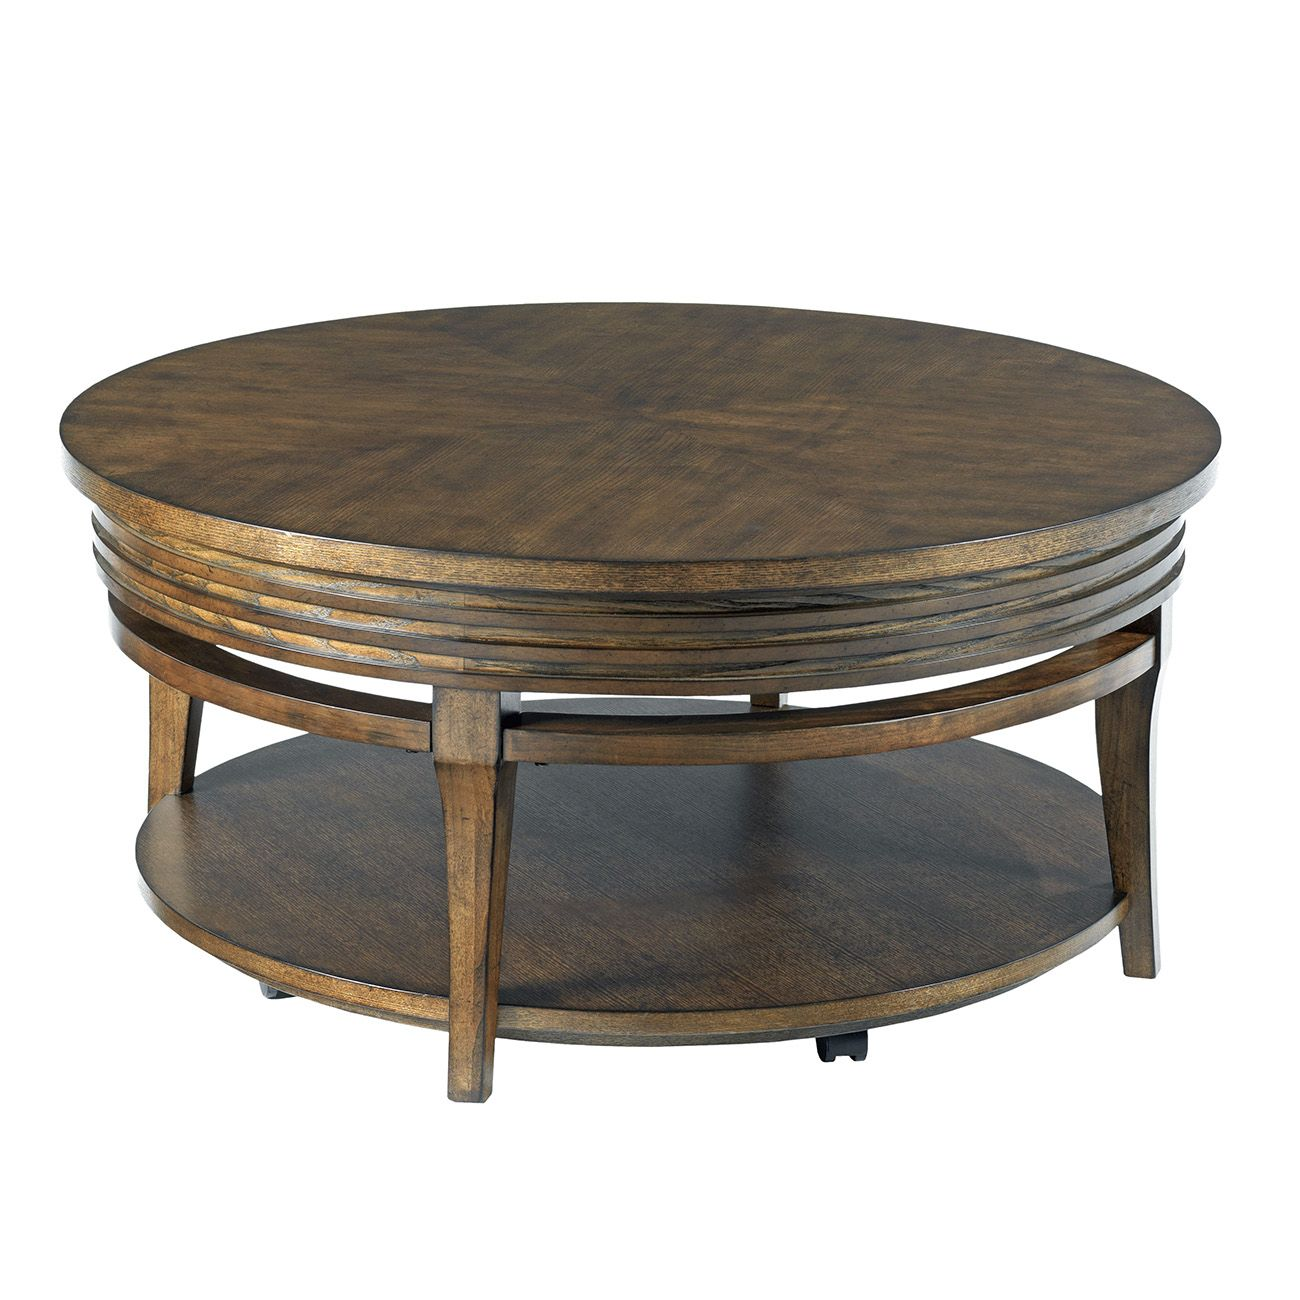 Hammary offers a variety of styles in Occasional Tables